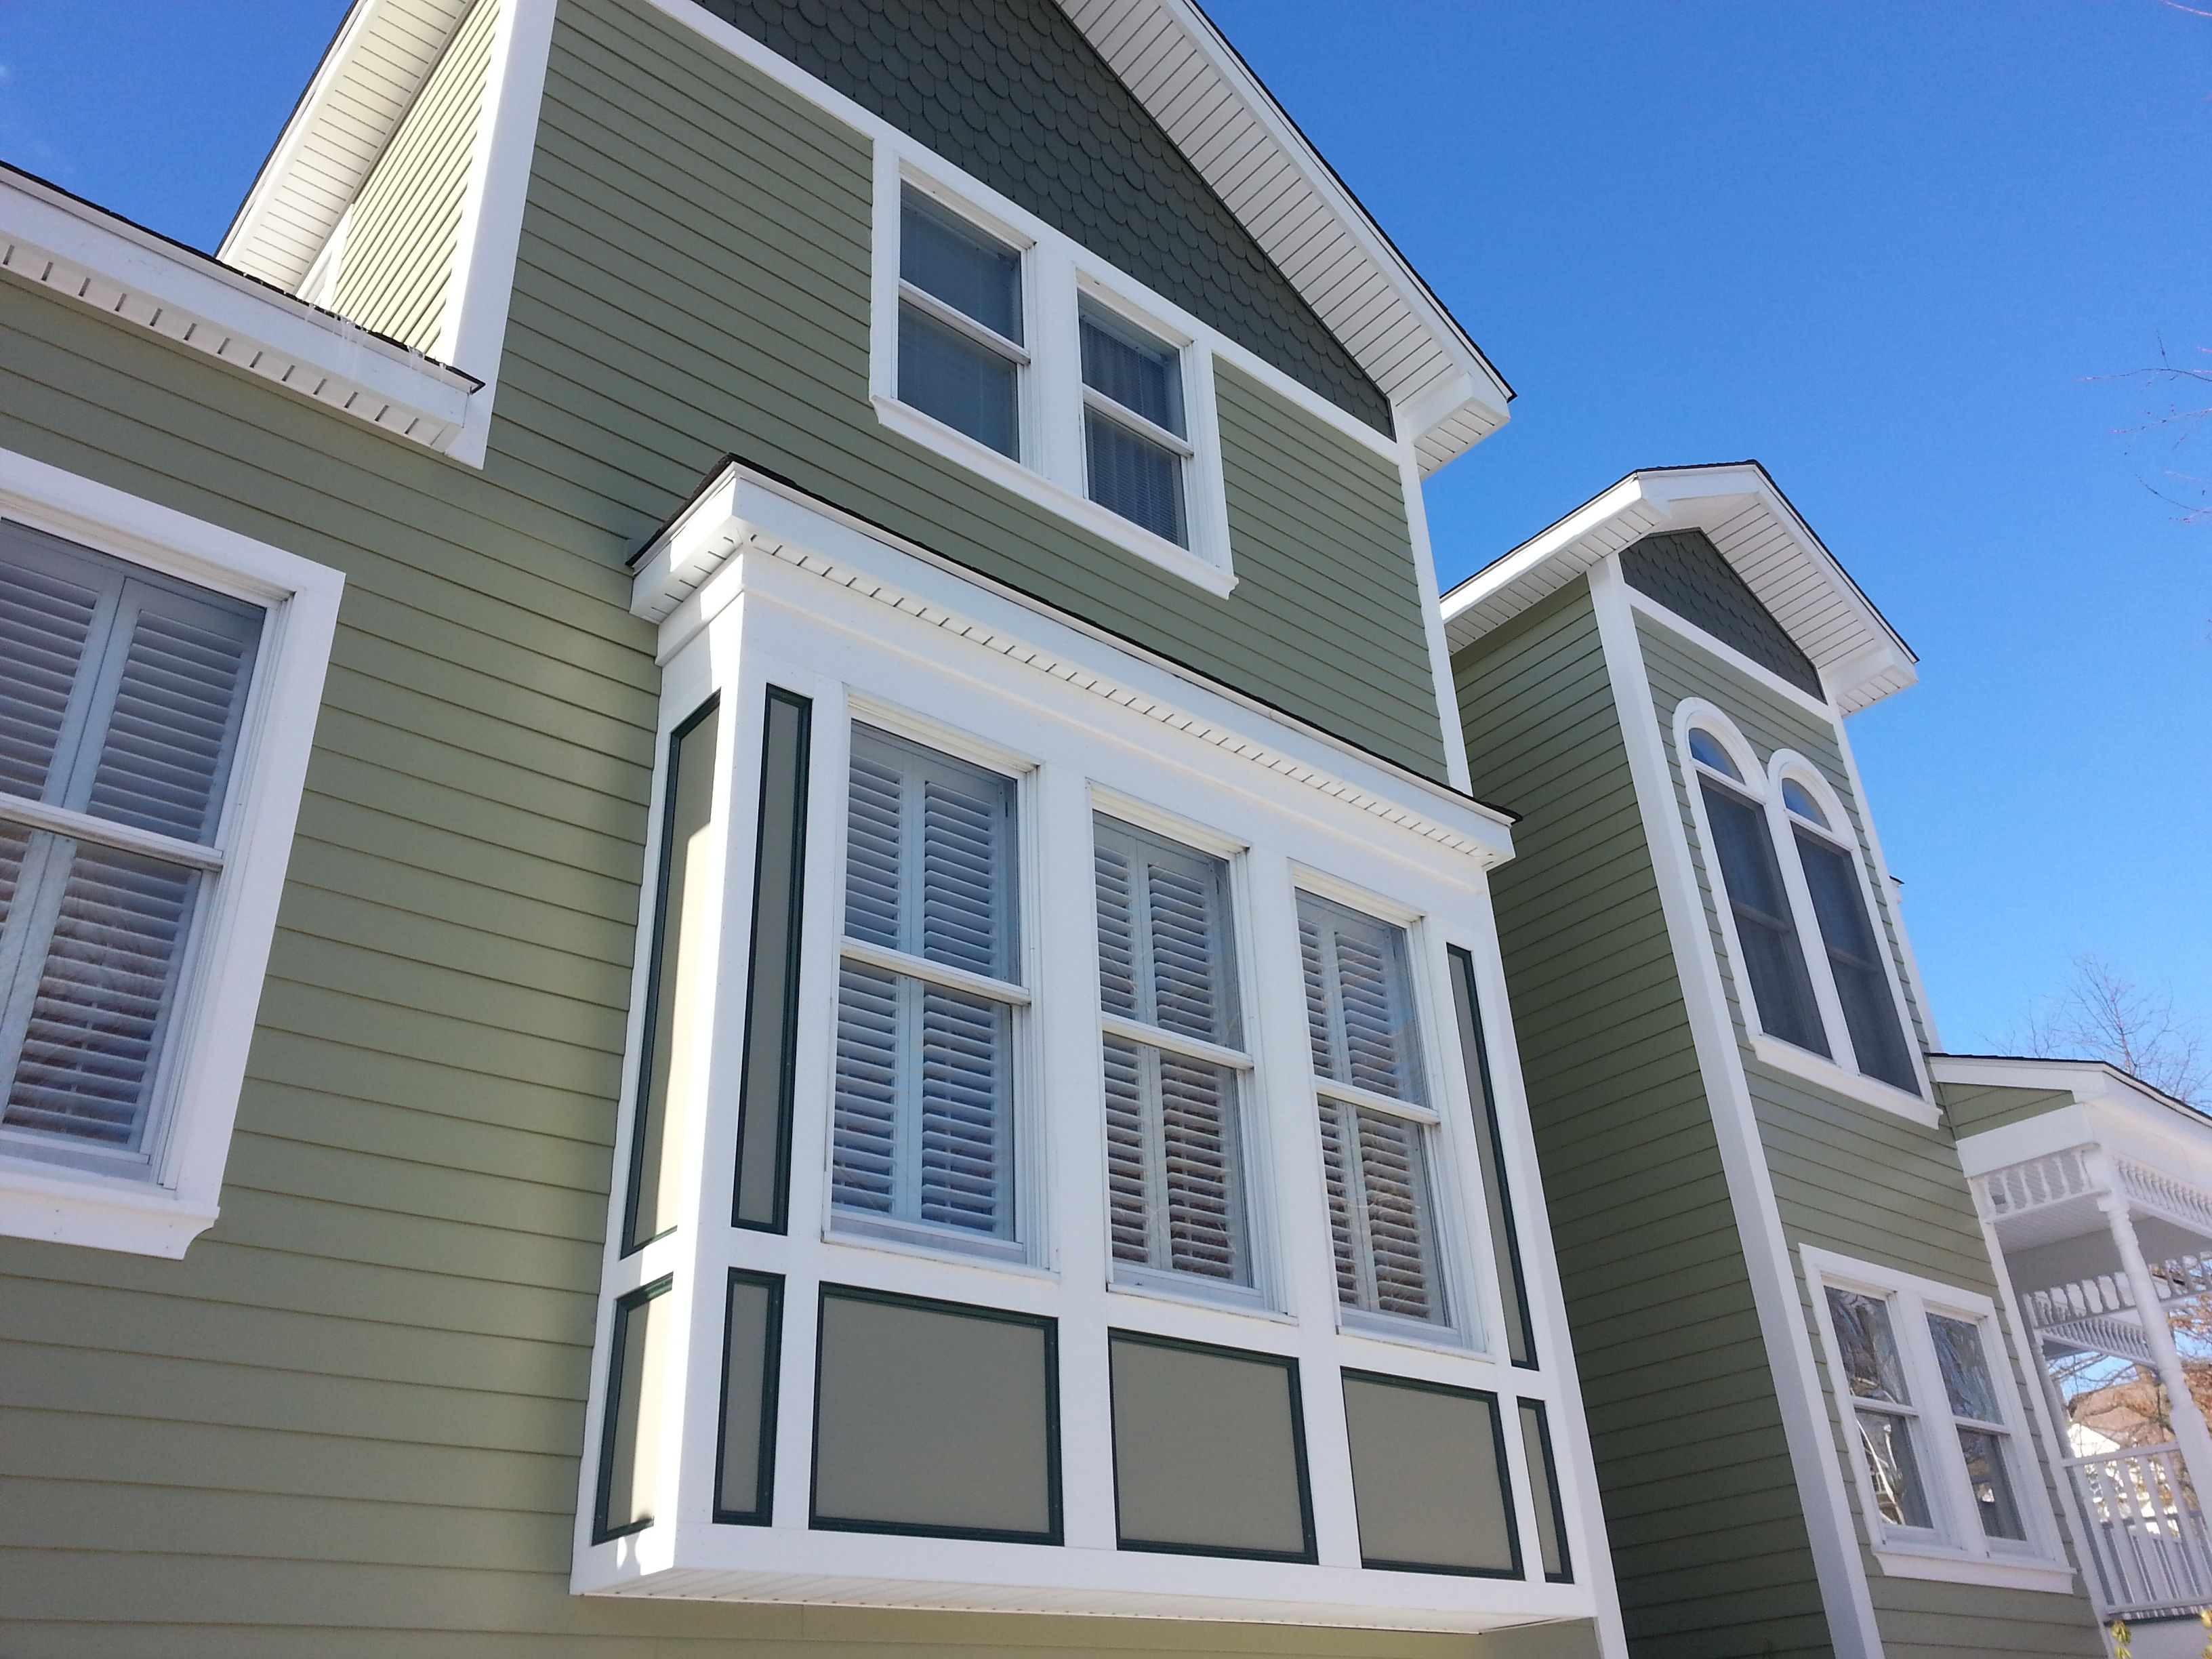 James Hardie Fiber Cement Siding Is Designed To Last A Lifetime Resisting Cracking Rotting Hail Damage Term Hardie Siding James Hardie Siding Cement Siding